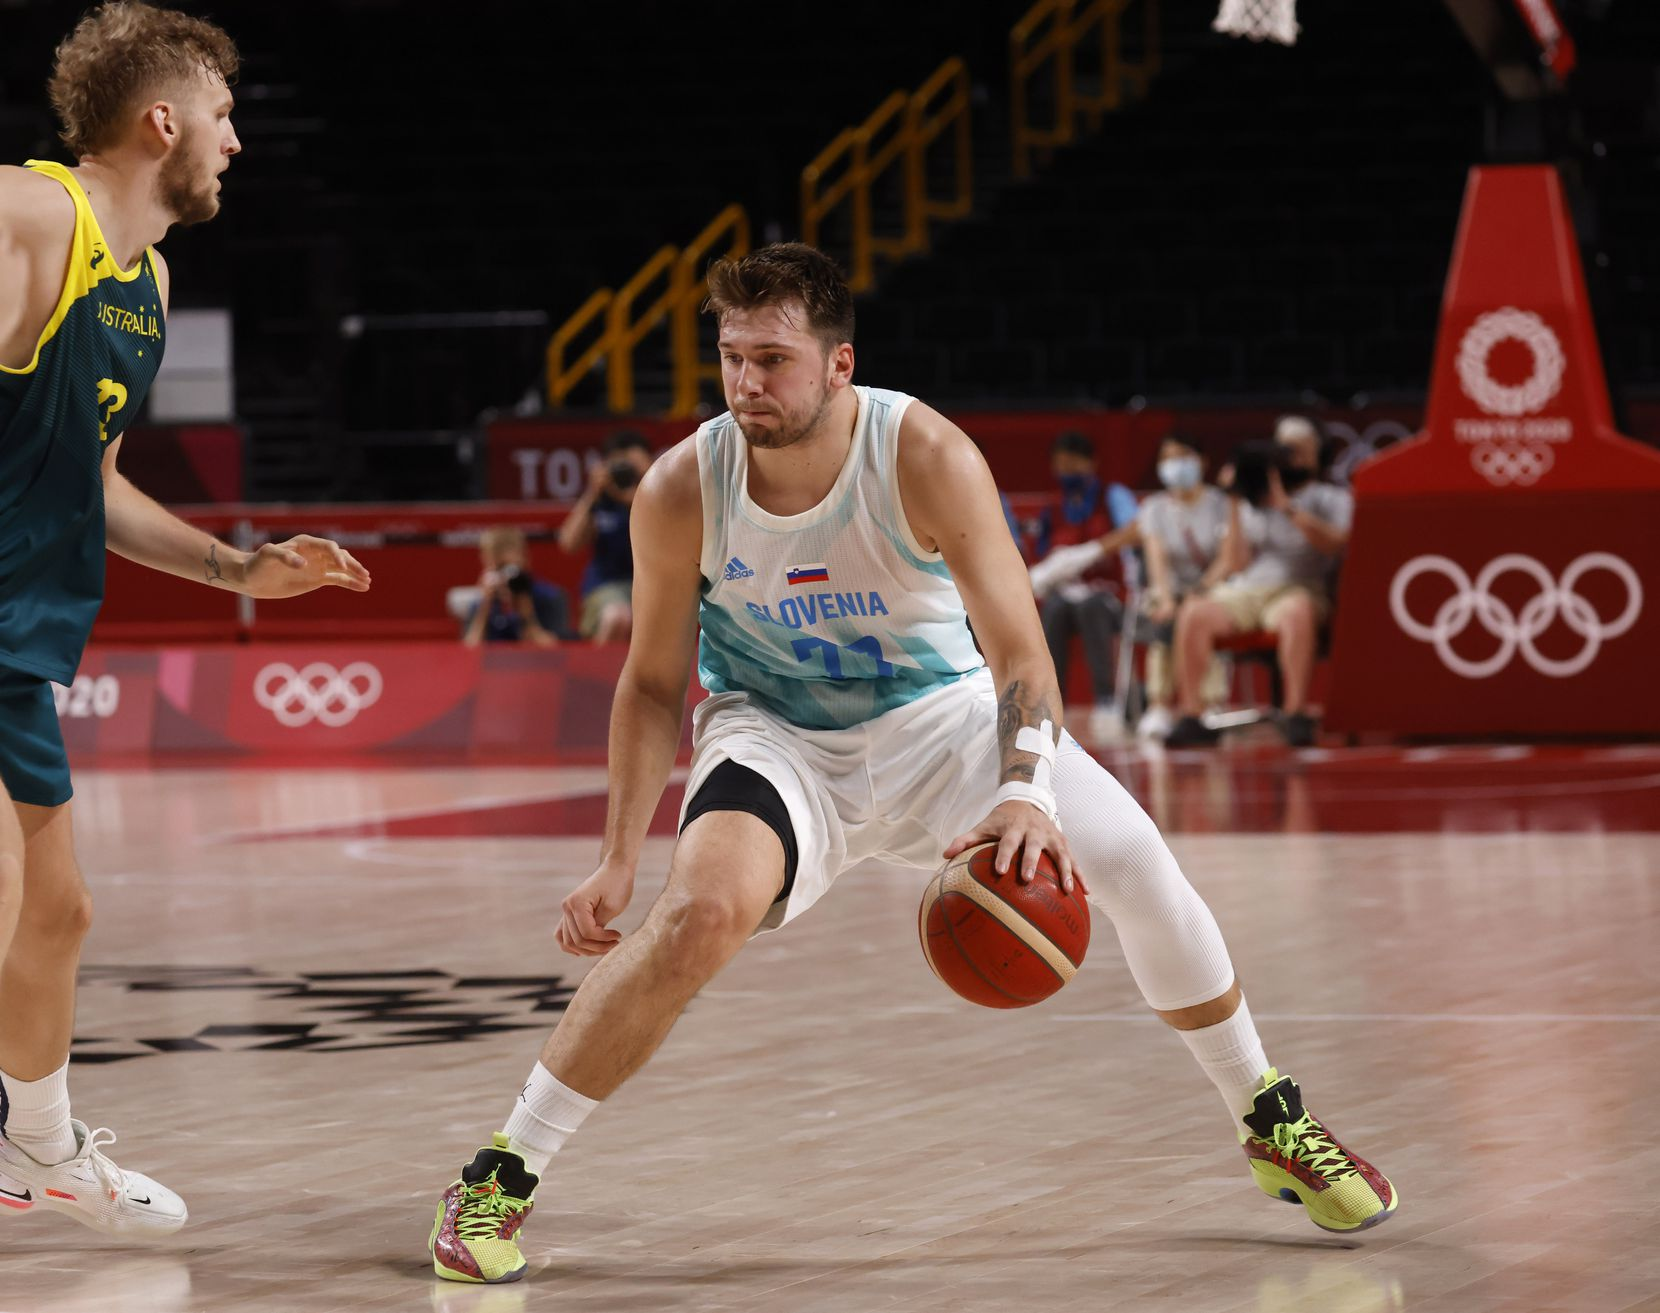 Slovenia's Luka Doncic (77) dribbles in front of Australia's Jock Landale (13) during the second quarter of play in the bronze medal basketball game at the postponed 2020 Tokyo Olympics at Saitama Super Arena, on Saturday, August 7, 2021, in Saitama, Japan. (Vernon Bryant/The Dallas Morning News)